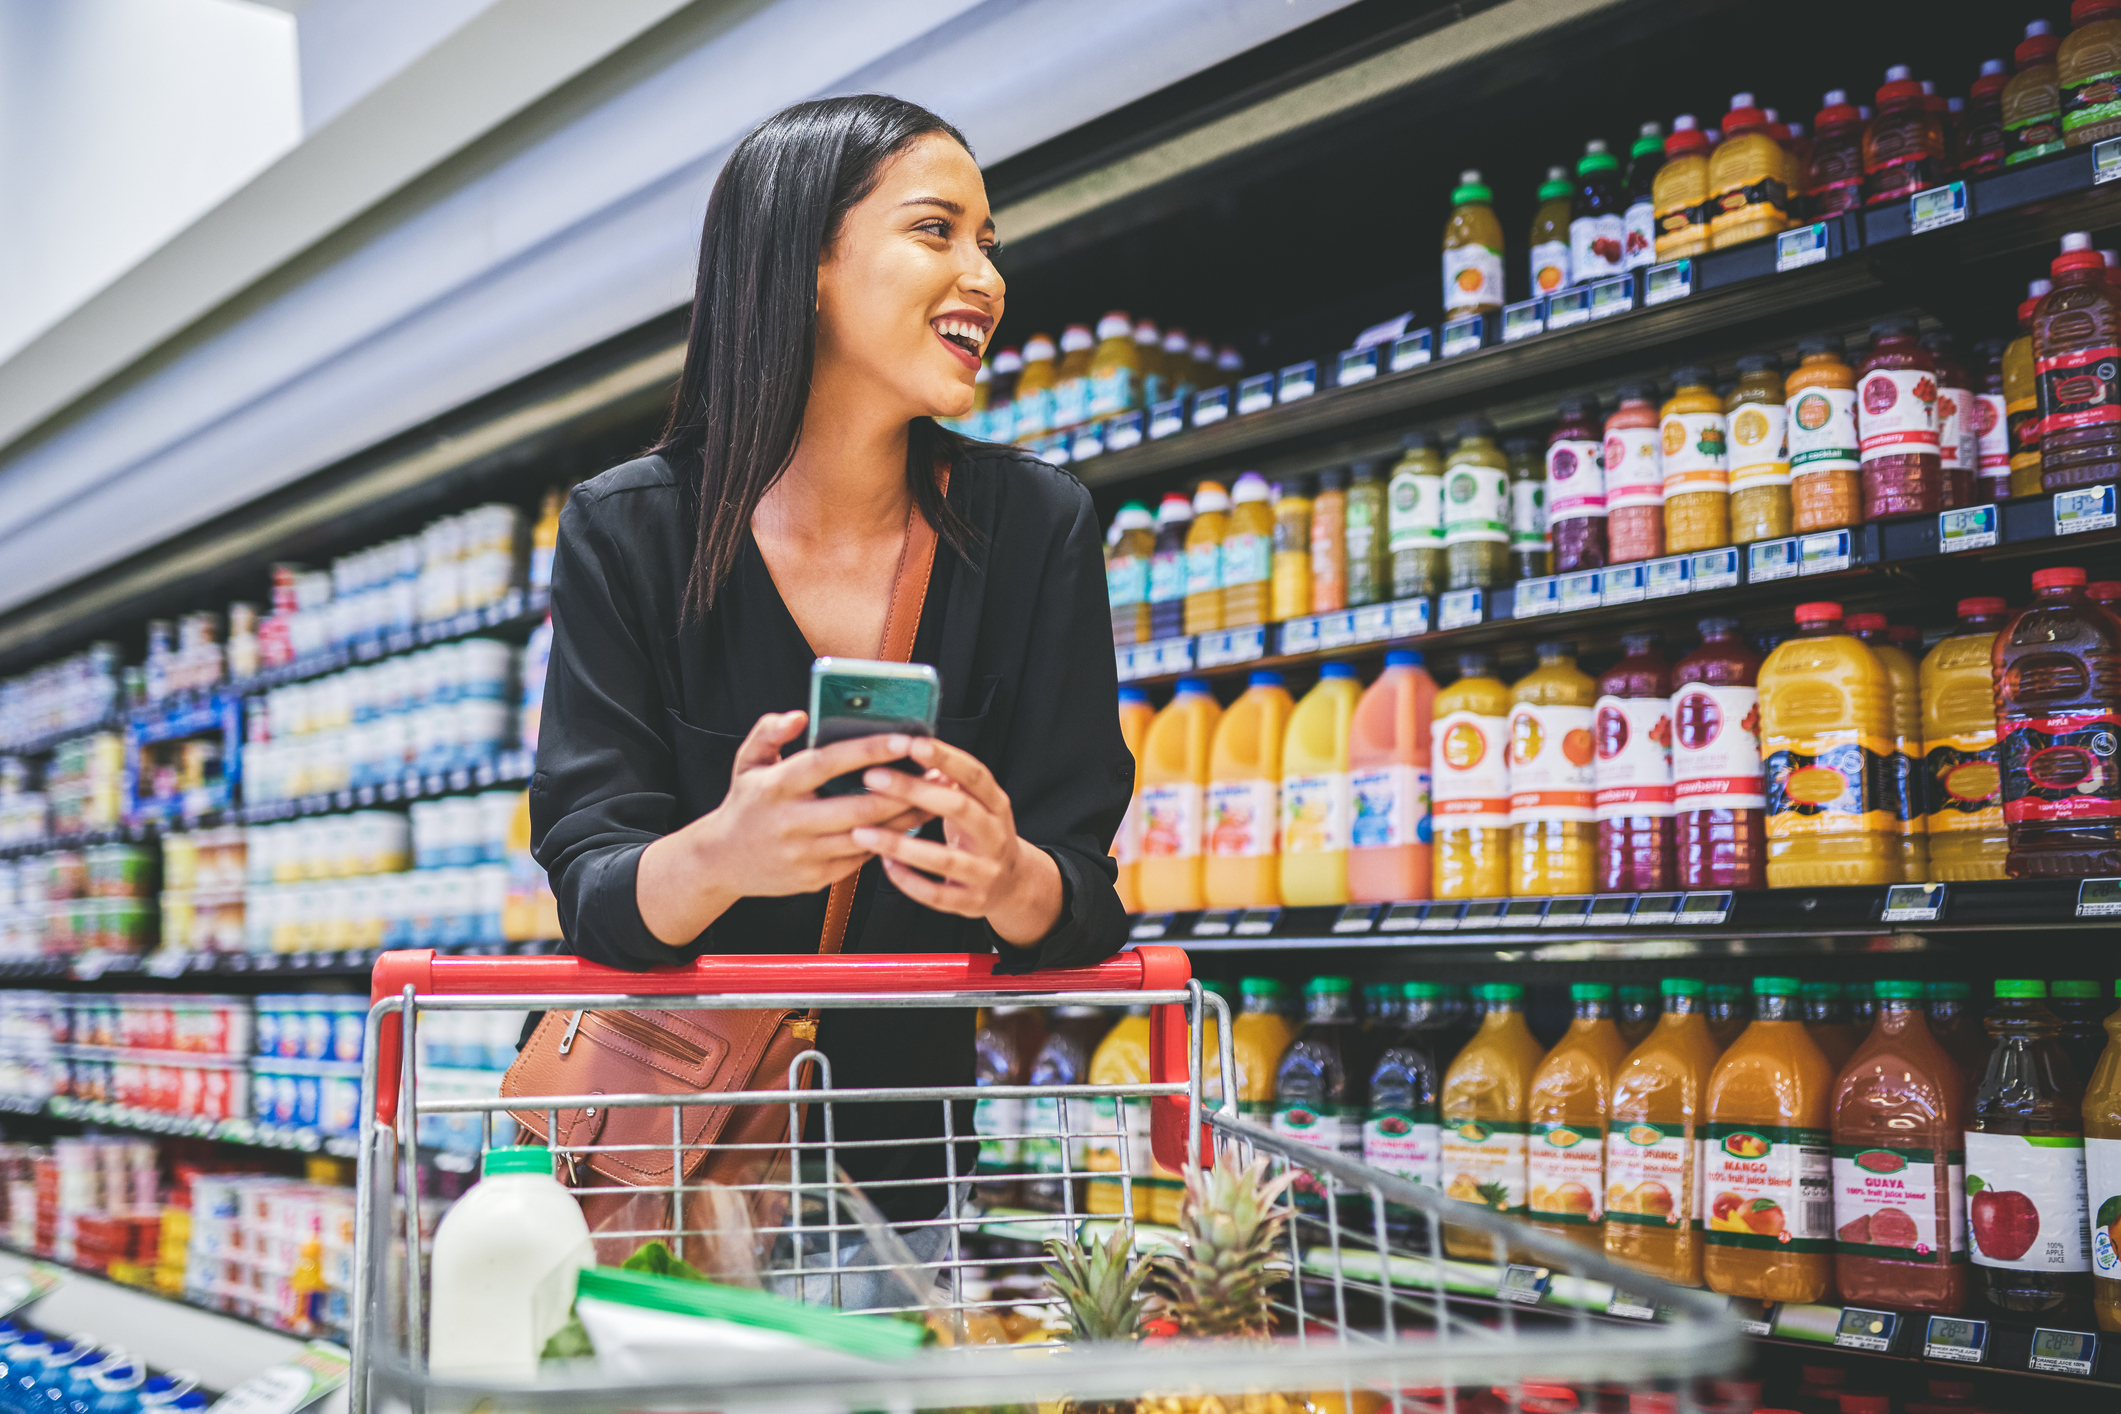 Shot of a young woman using a smartphone while shopping in a grocery store